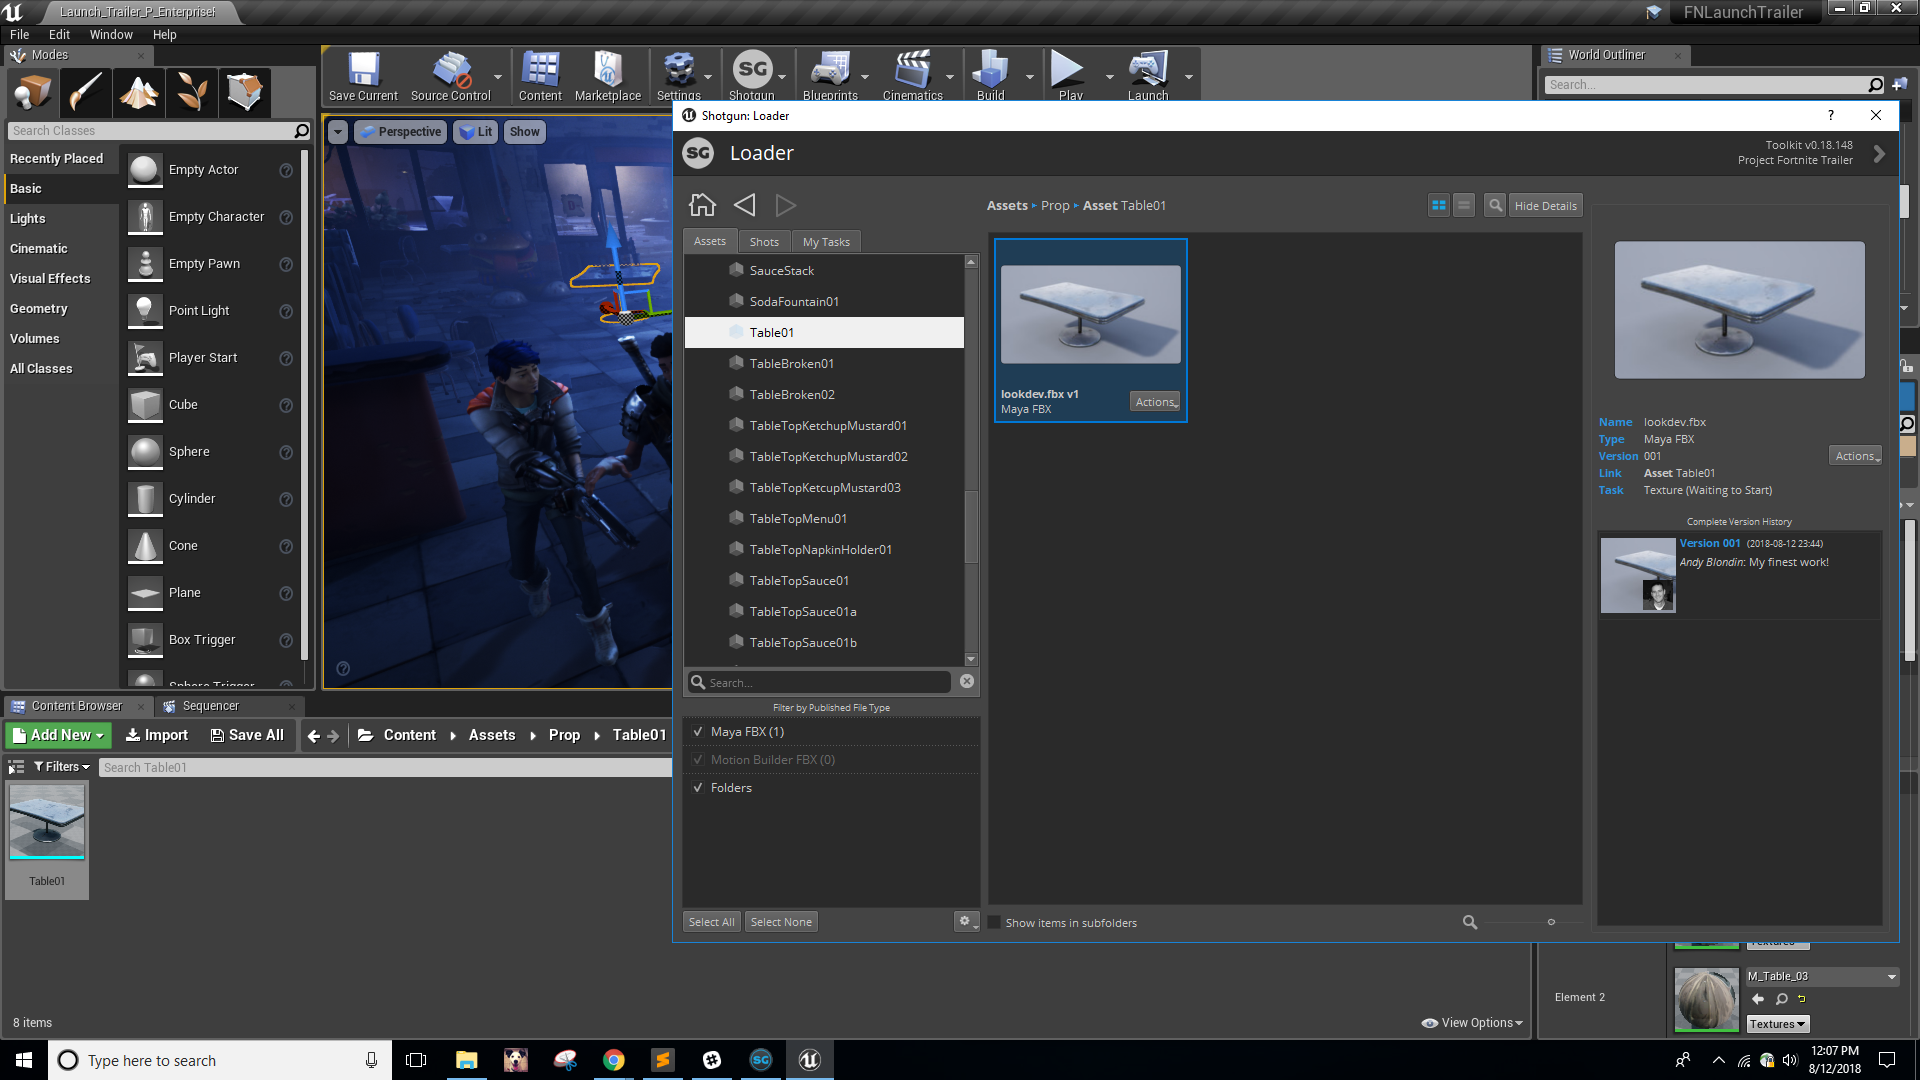 Shotgun Integration Now Available in Unreal Engine 4 20